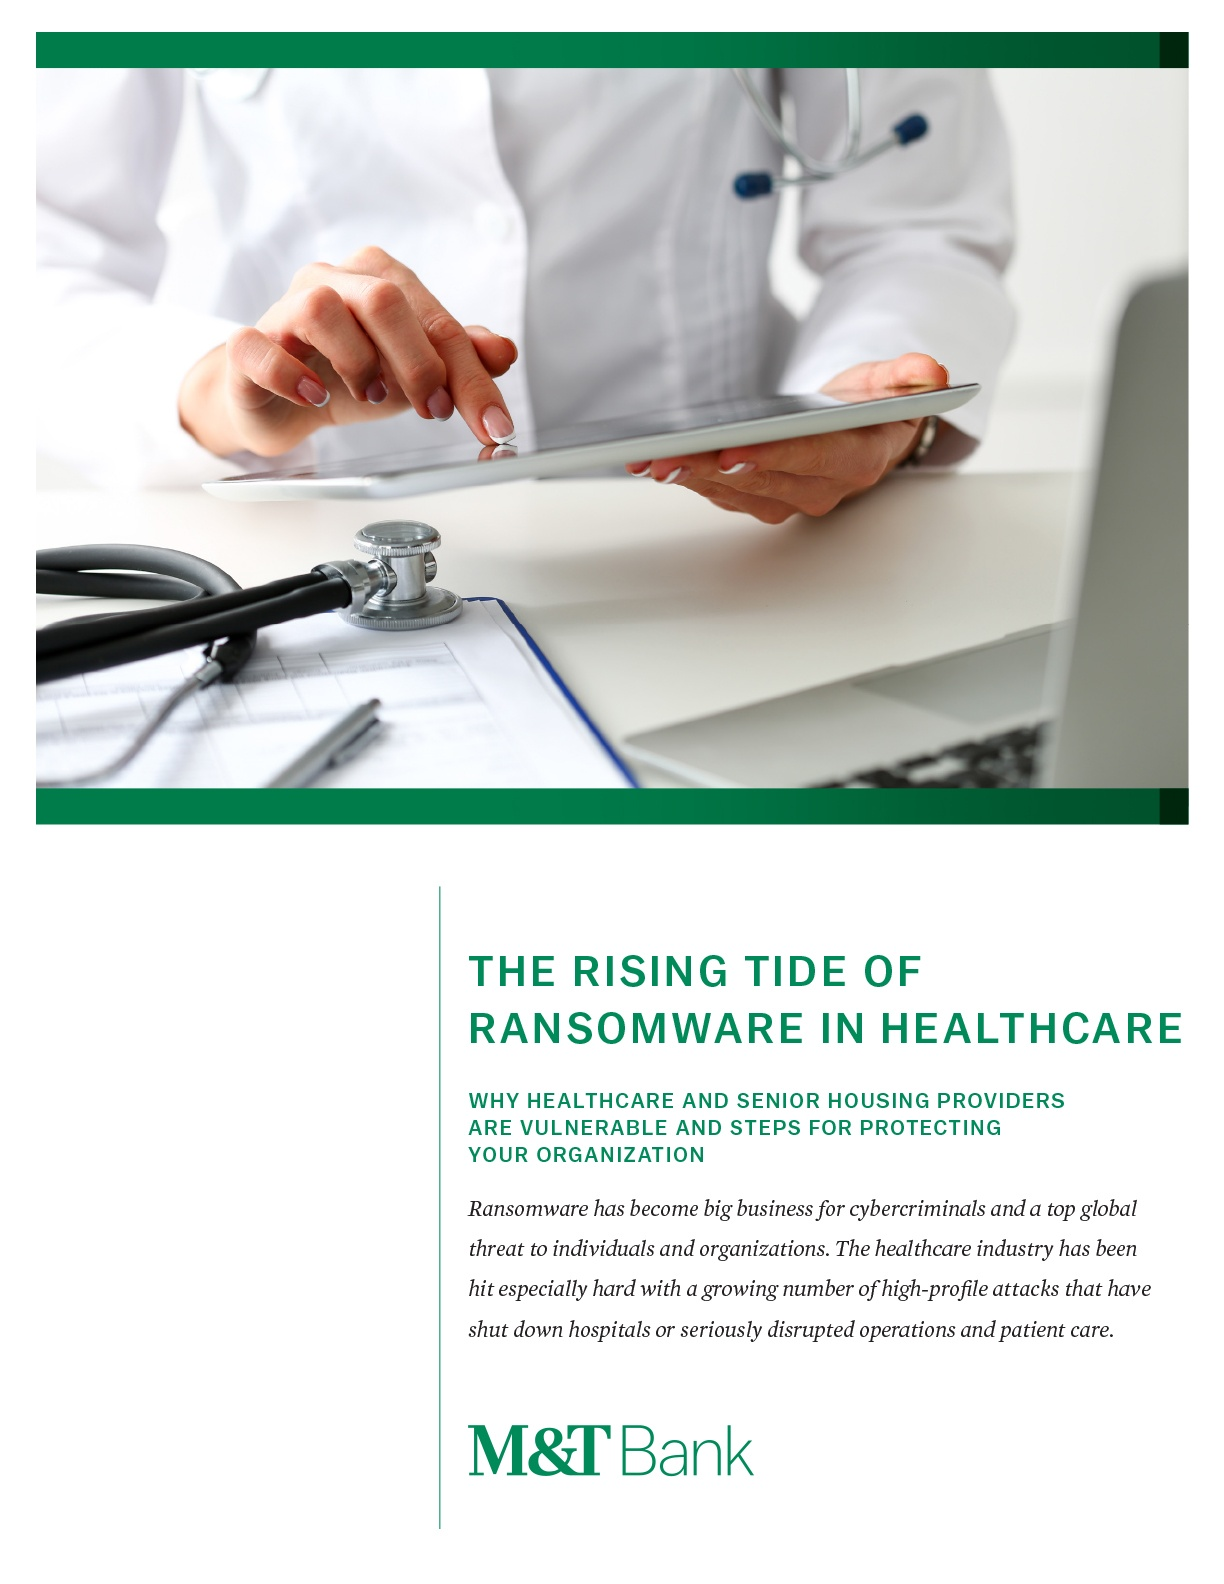 The Rising Tide of Ransomware in Healthcare